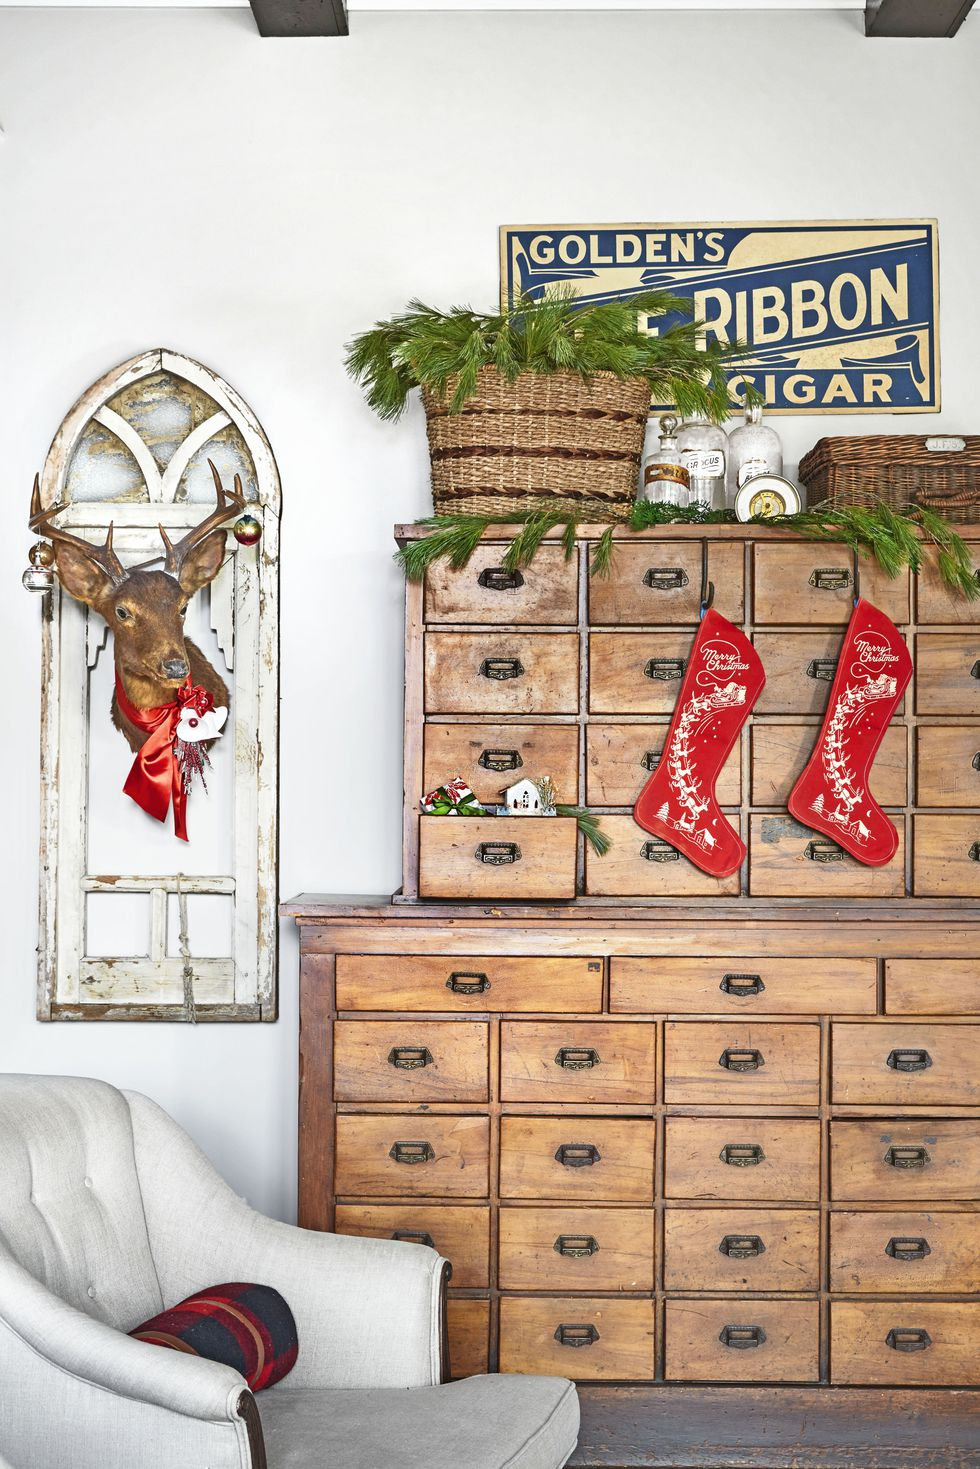 spirit-christmas-past-hang-with-care-stockings-deer-head-1216.jpg